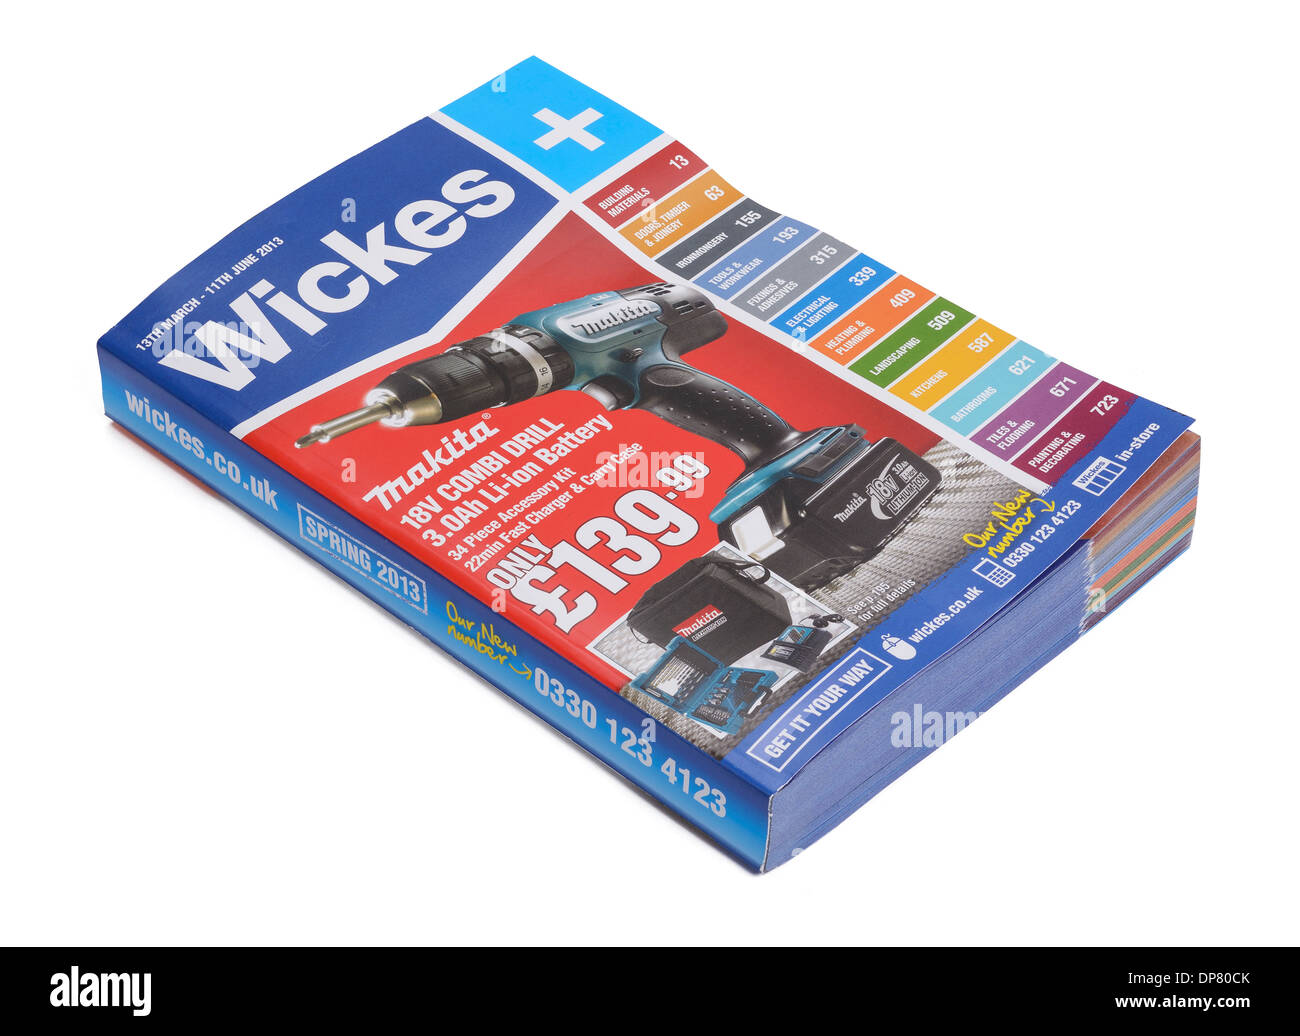 Wickes diy product catalogue - Stock Image